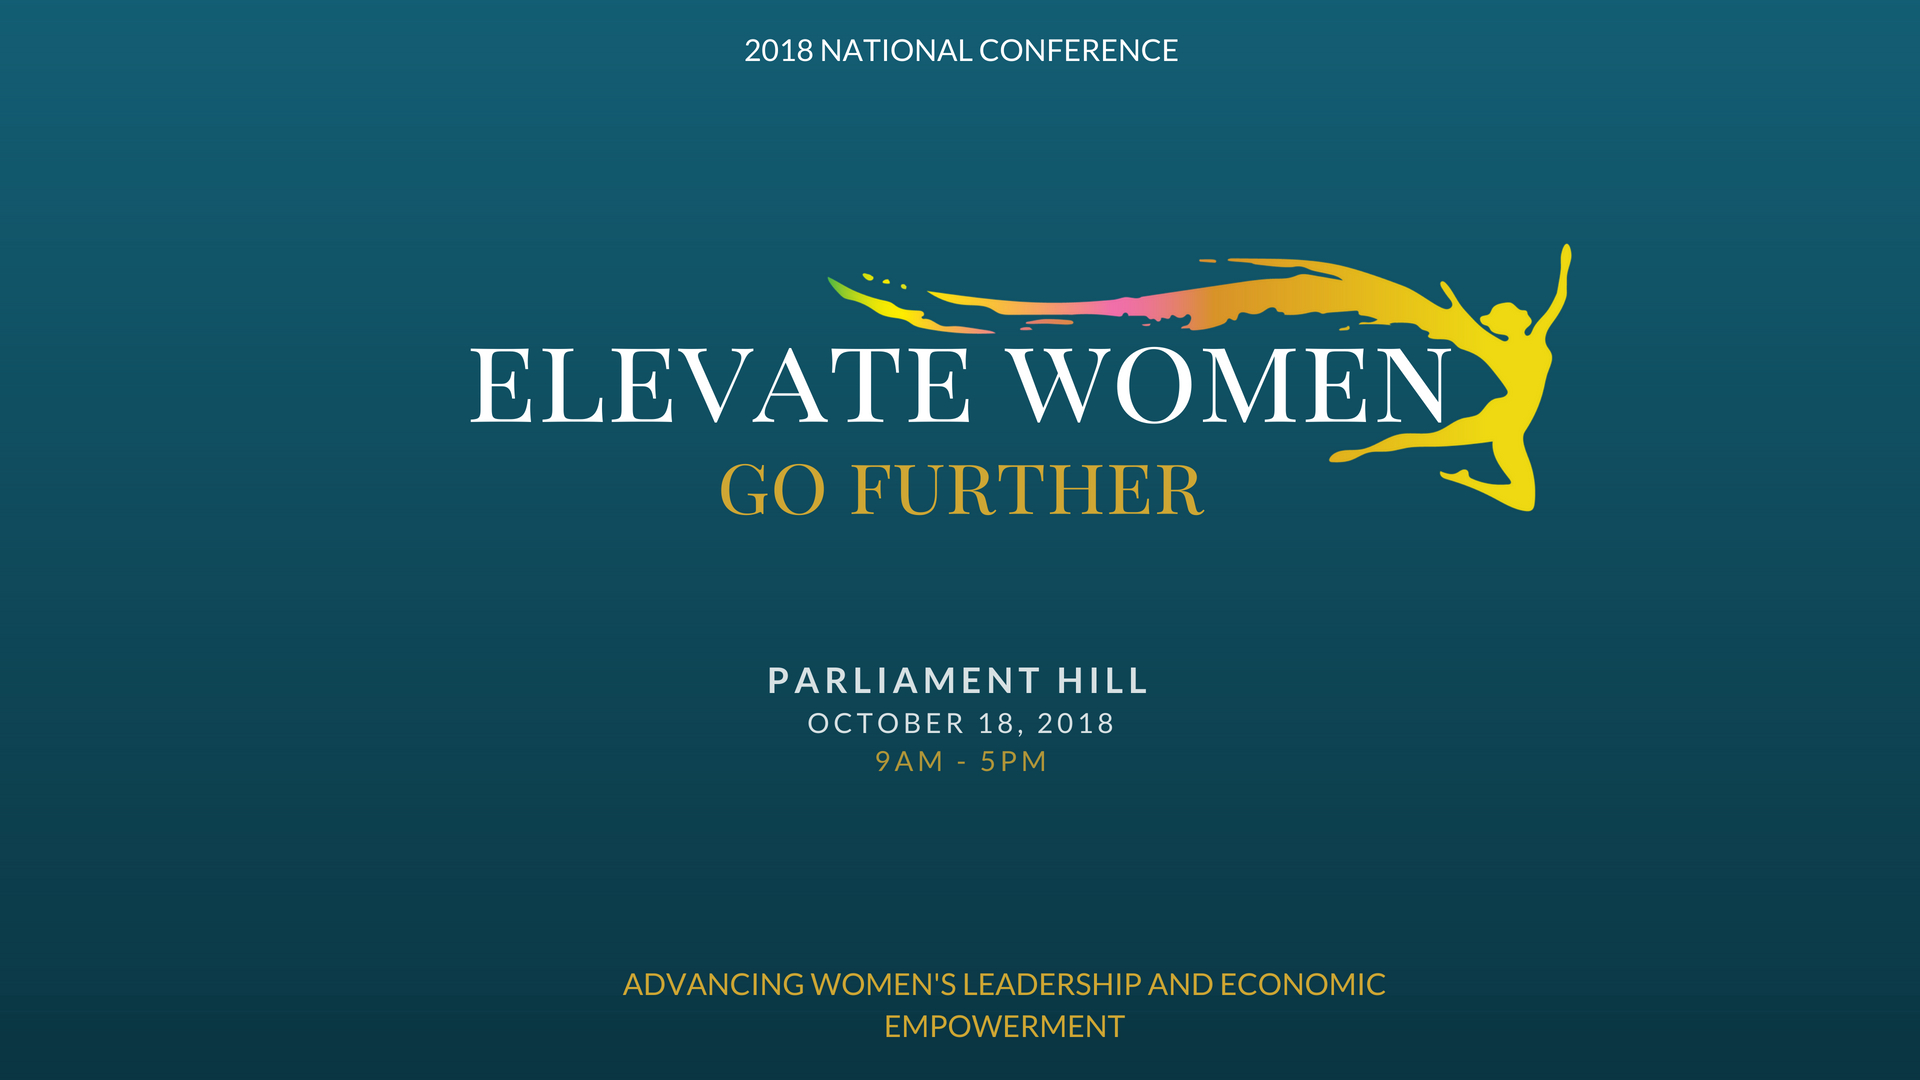 Elevate Women National Conference